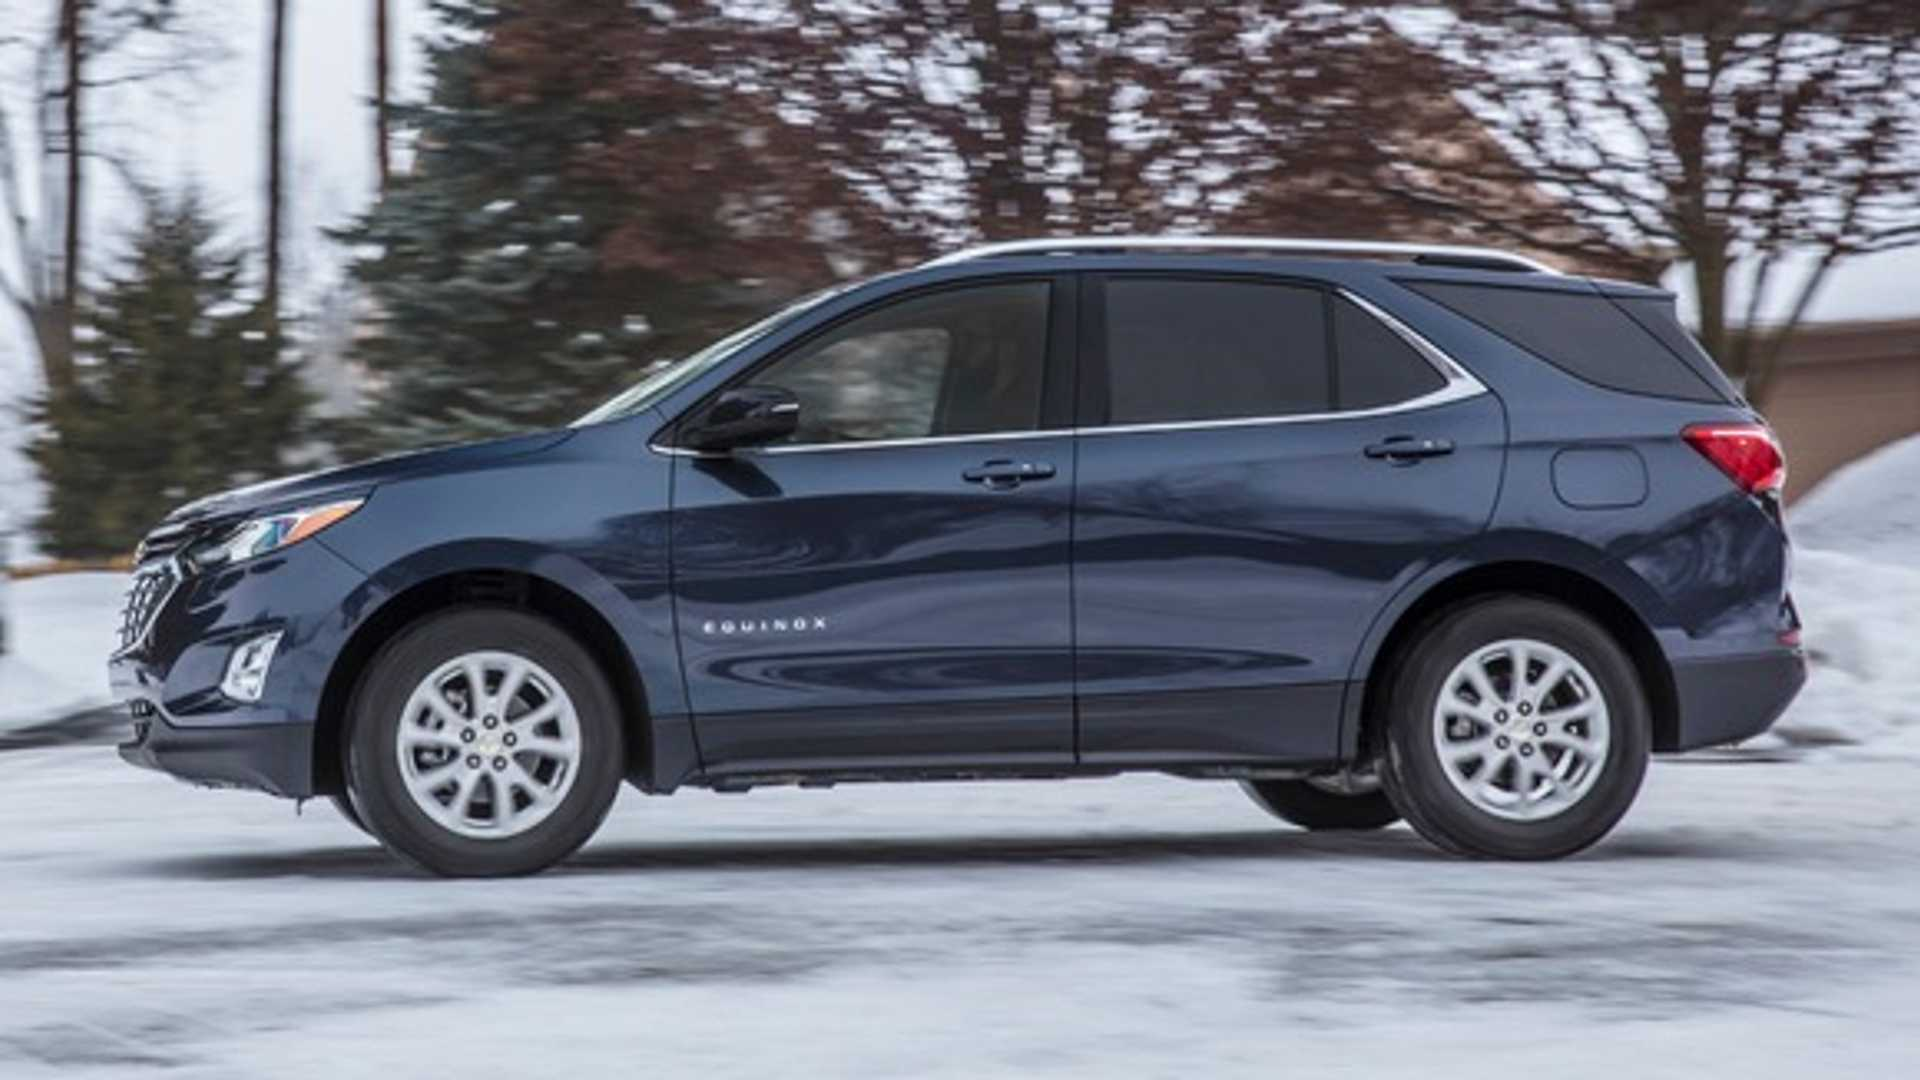 2020 Chevy Equinox Release Date >> 2020 Chevy Equinox Gmc Terrain Diesels To Drop Awd